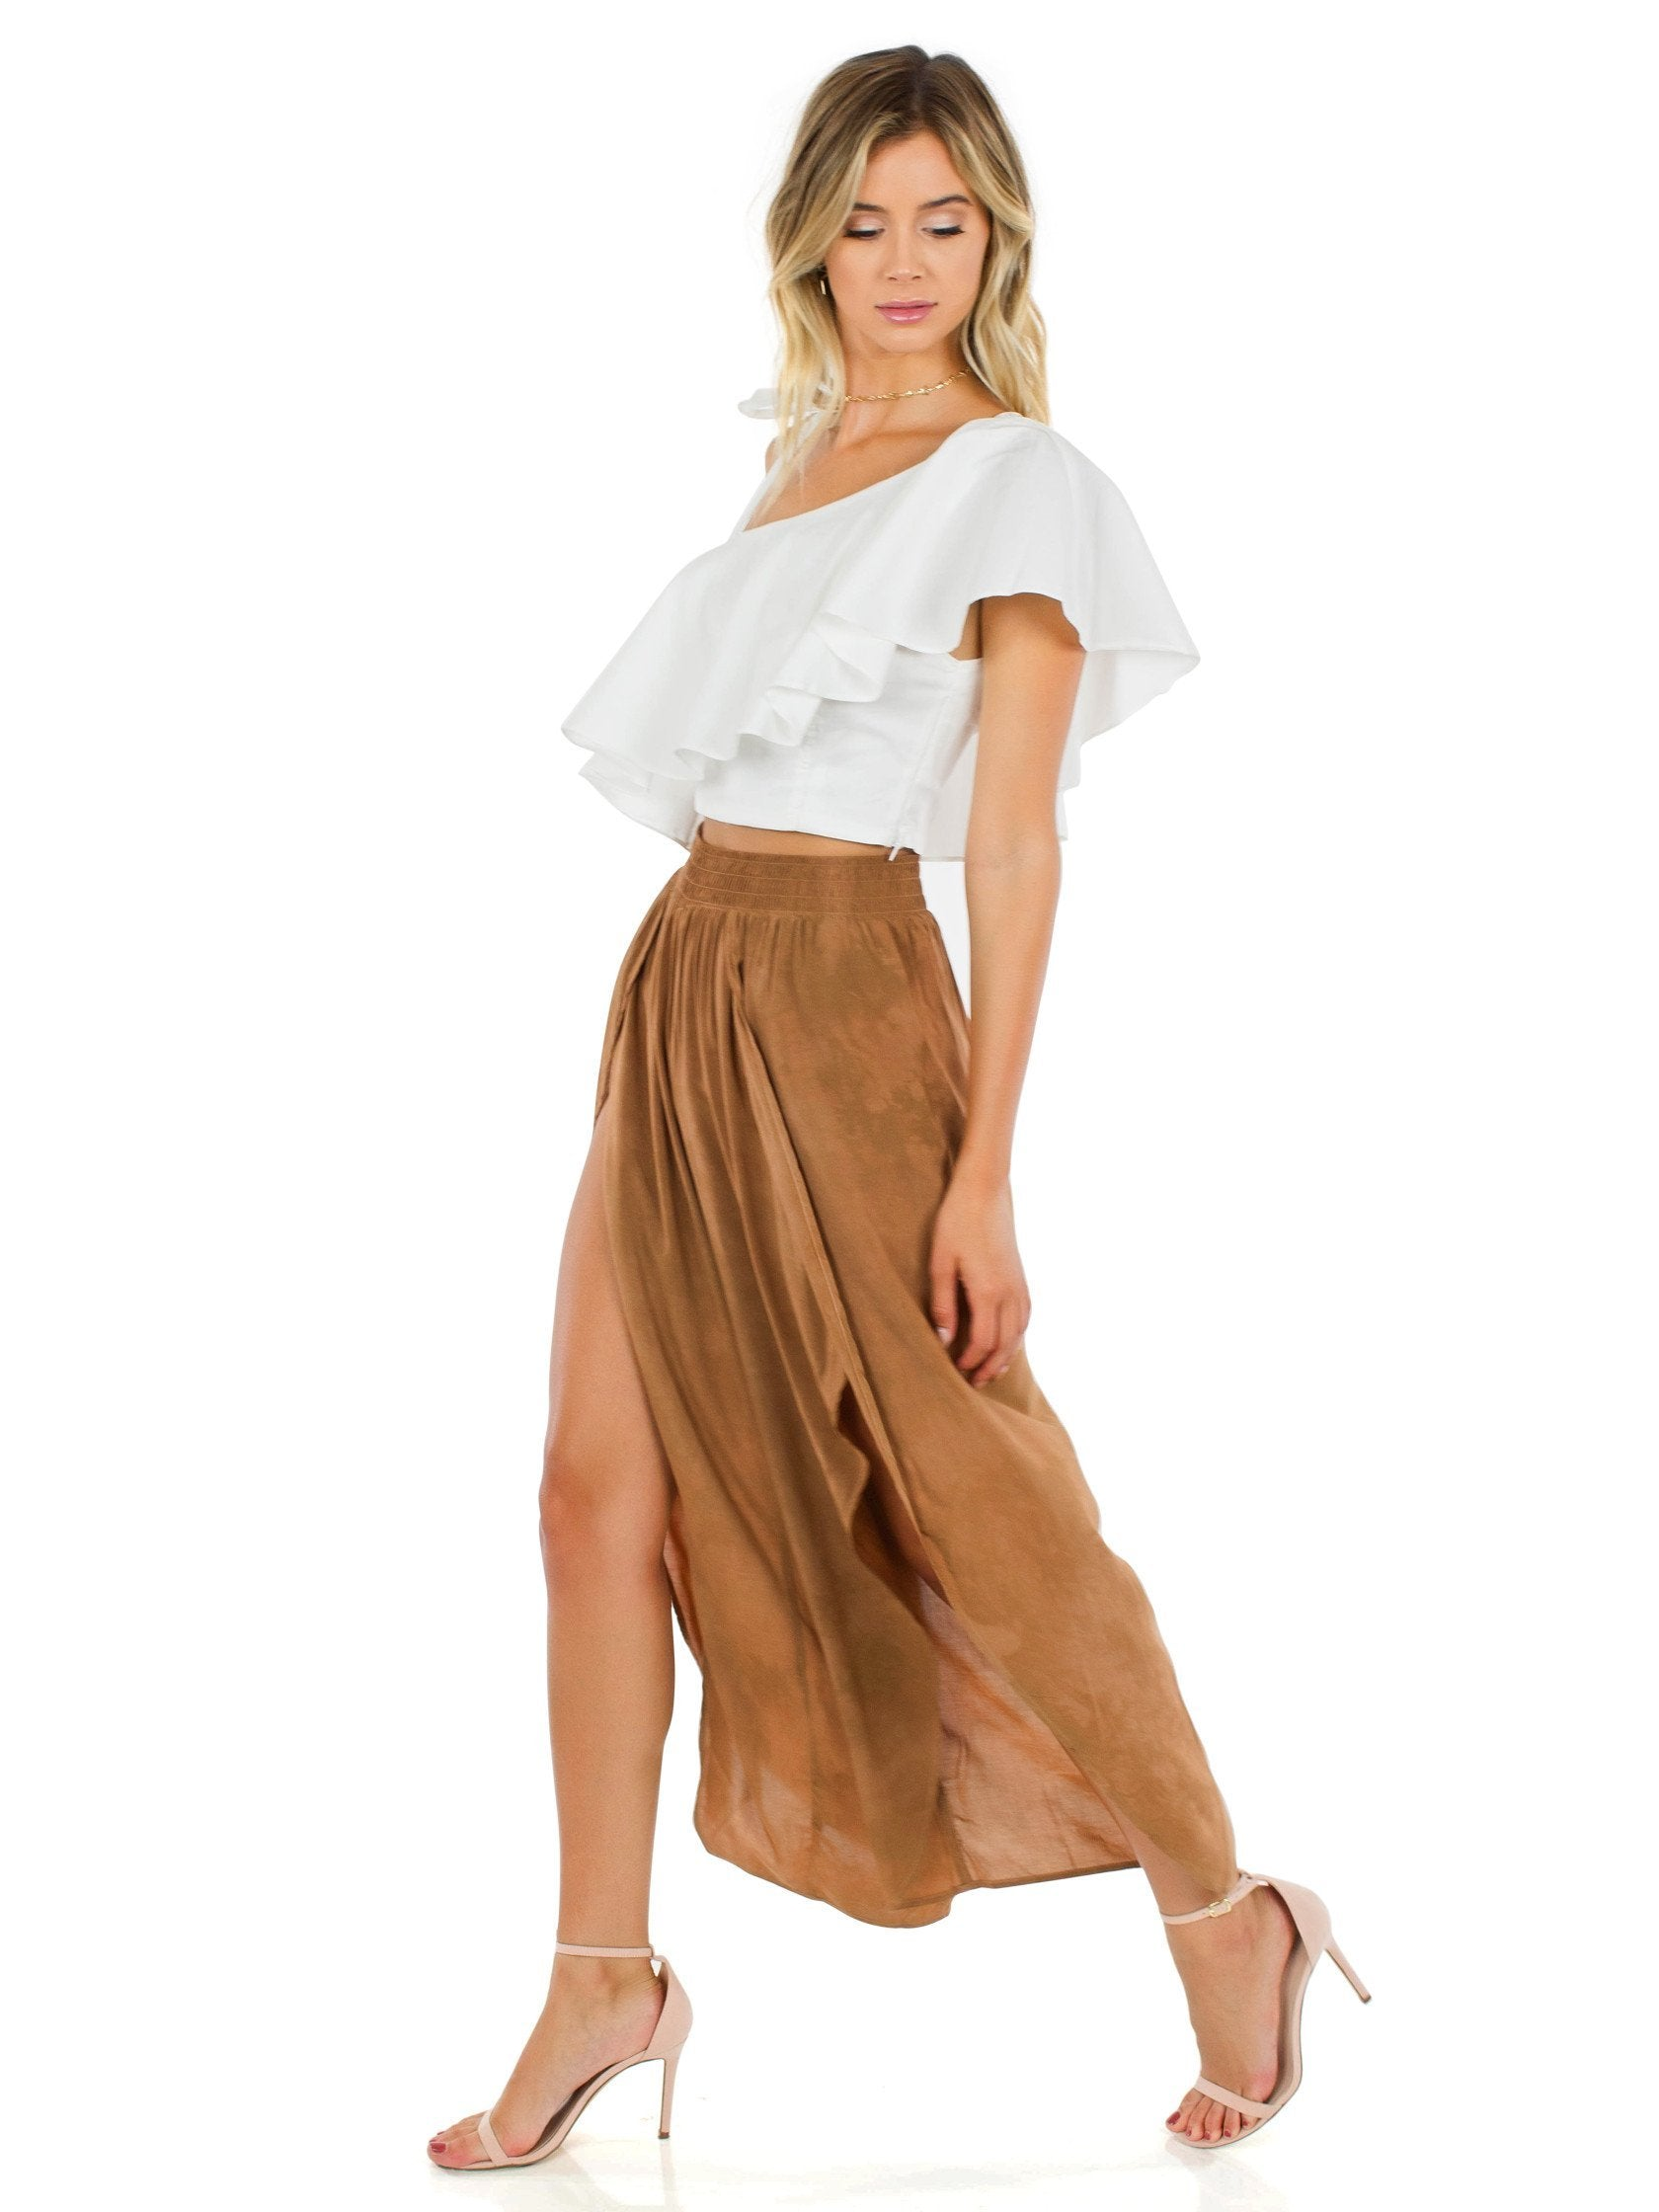 Women outfit in a pants rental from Blue Life called Jeanne Wrap Culotte